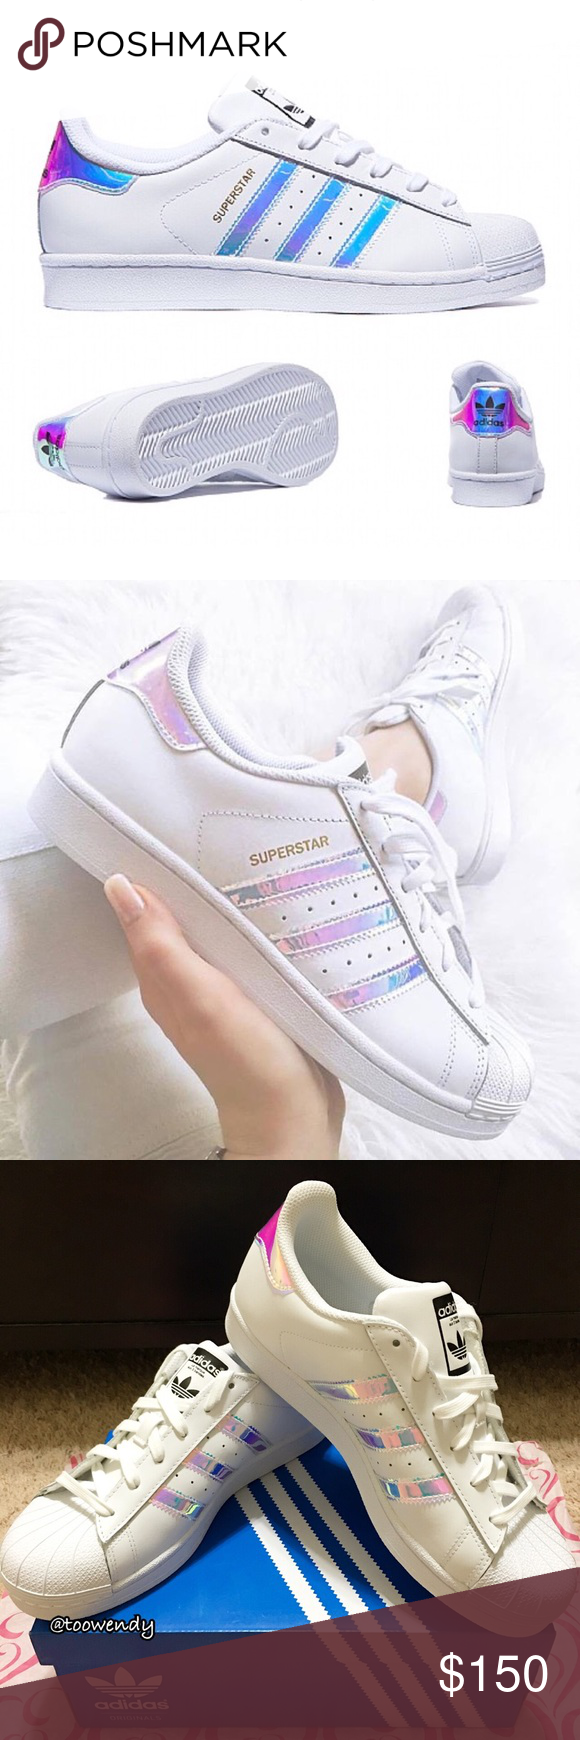 Adidas Originals Superstar Iridescent Shoes ✨RARE , LIMITED